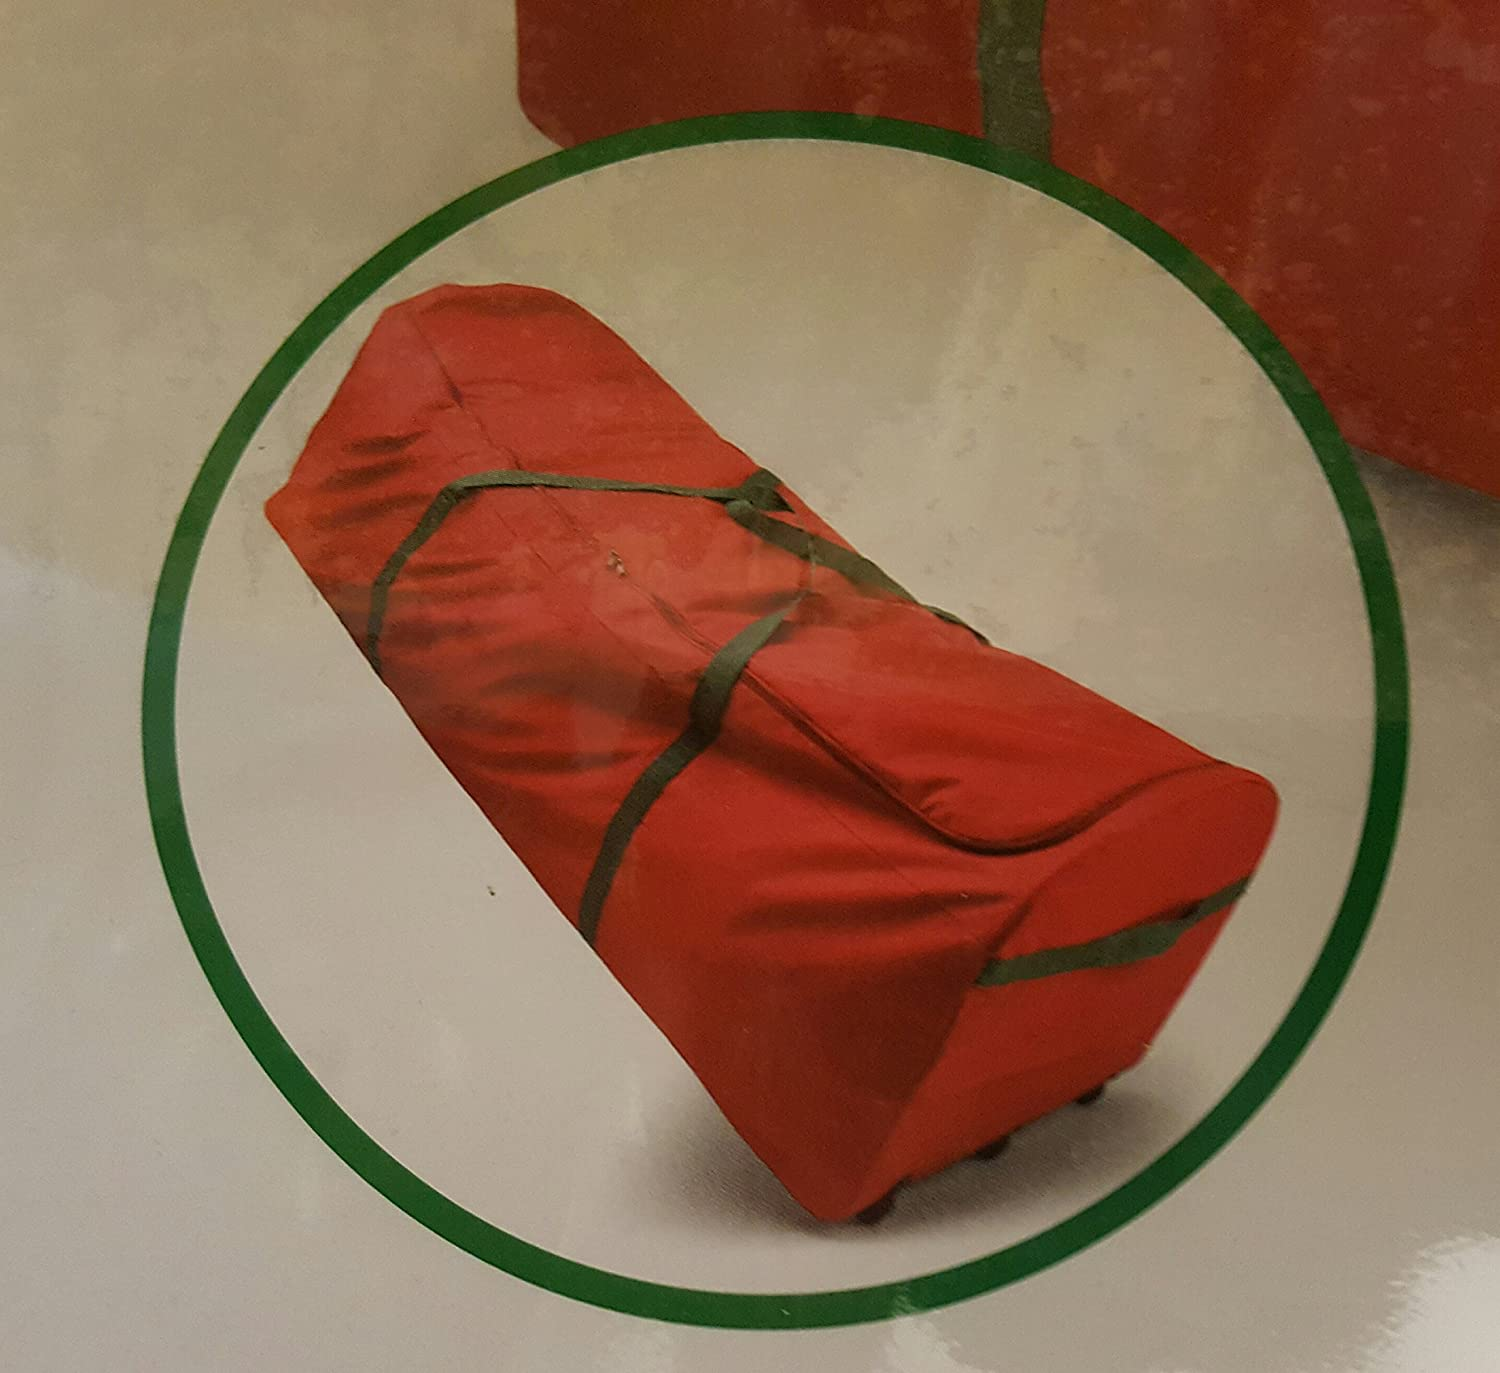 Amazon.com  Red Holiday Christmas Tree Storage Bag Canvas With Wheels Fits  9 Foot Tree  Home   Kitchen 3f847f88a264d